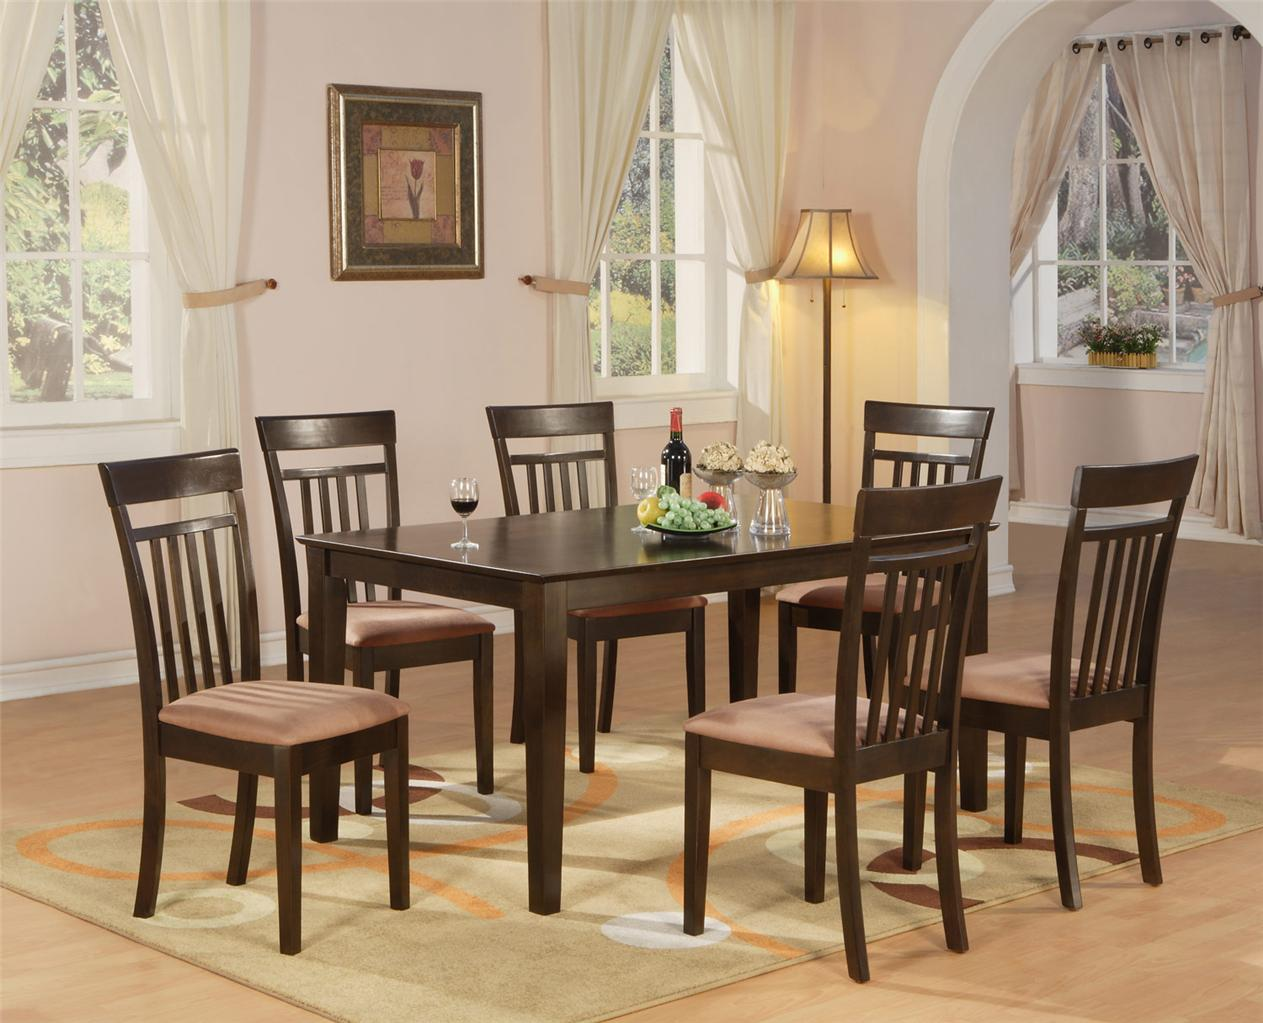 7 pc dining room dinette kitchen set table and 6 chairs ebay for Kitchen dining table chairs